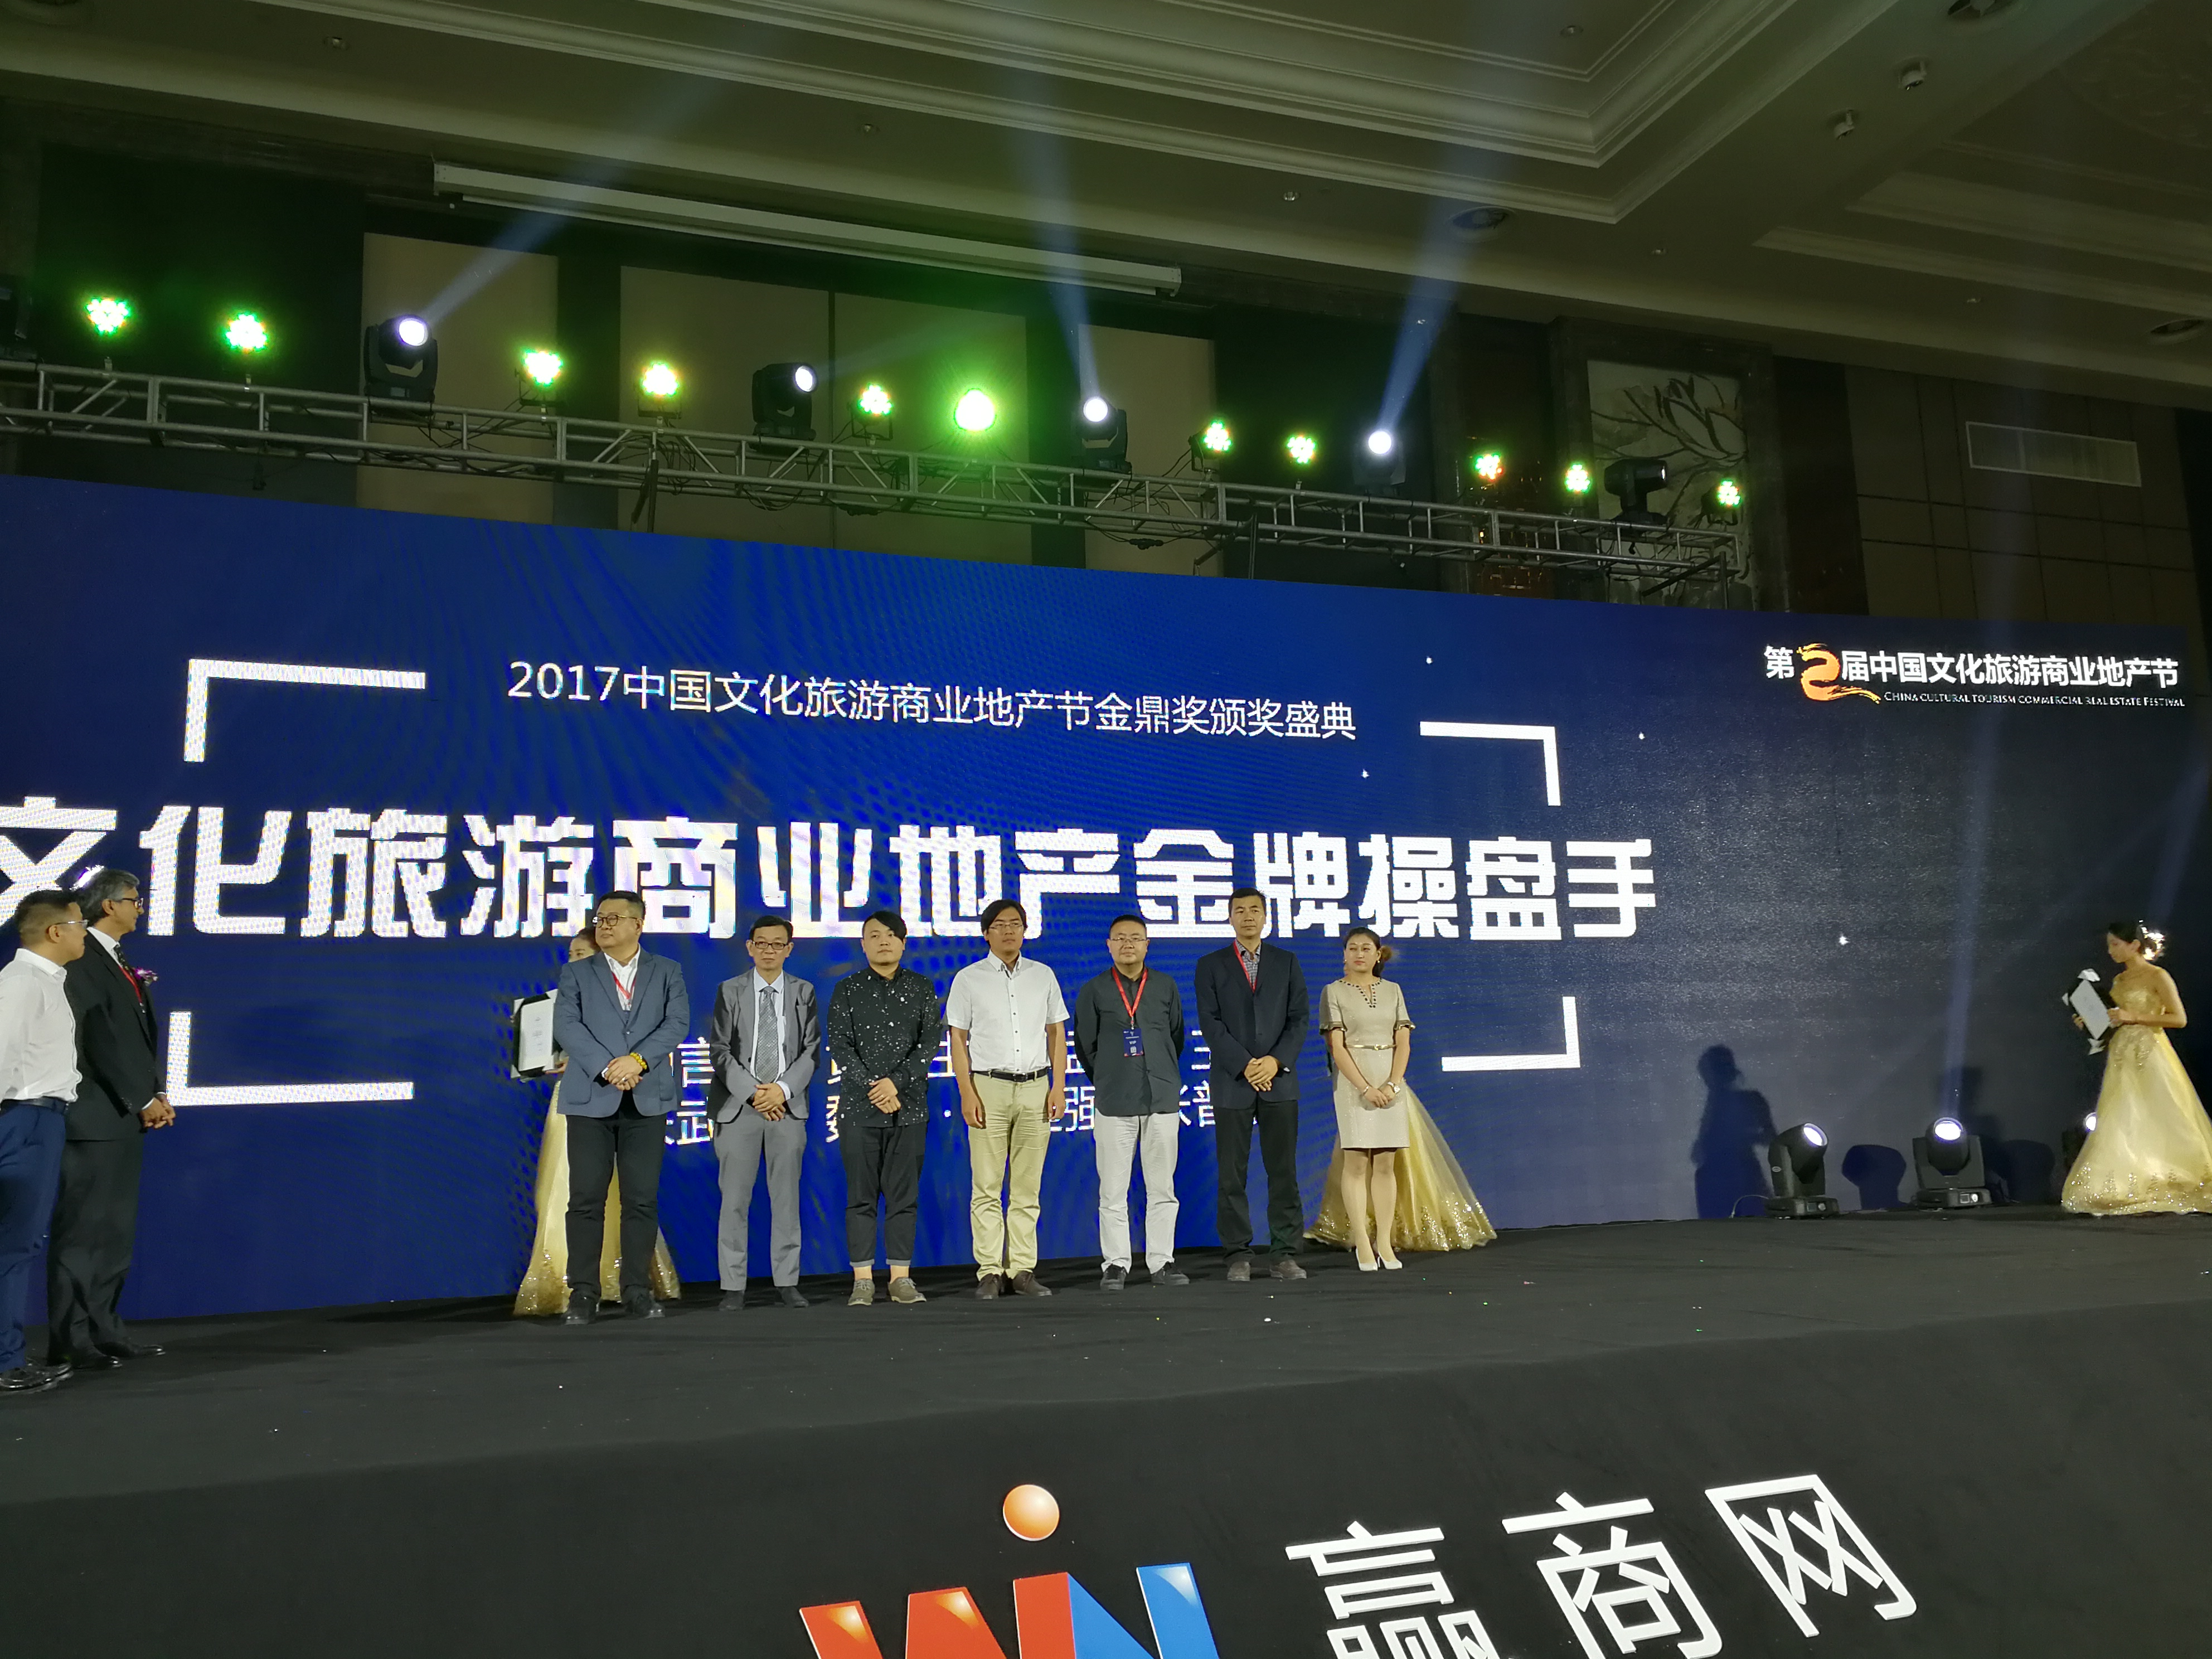 Warm congratulations on CEO Kelvin Ng's winning The Golden Tripod Award in 2017 China Cultural Touris